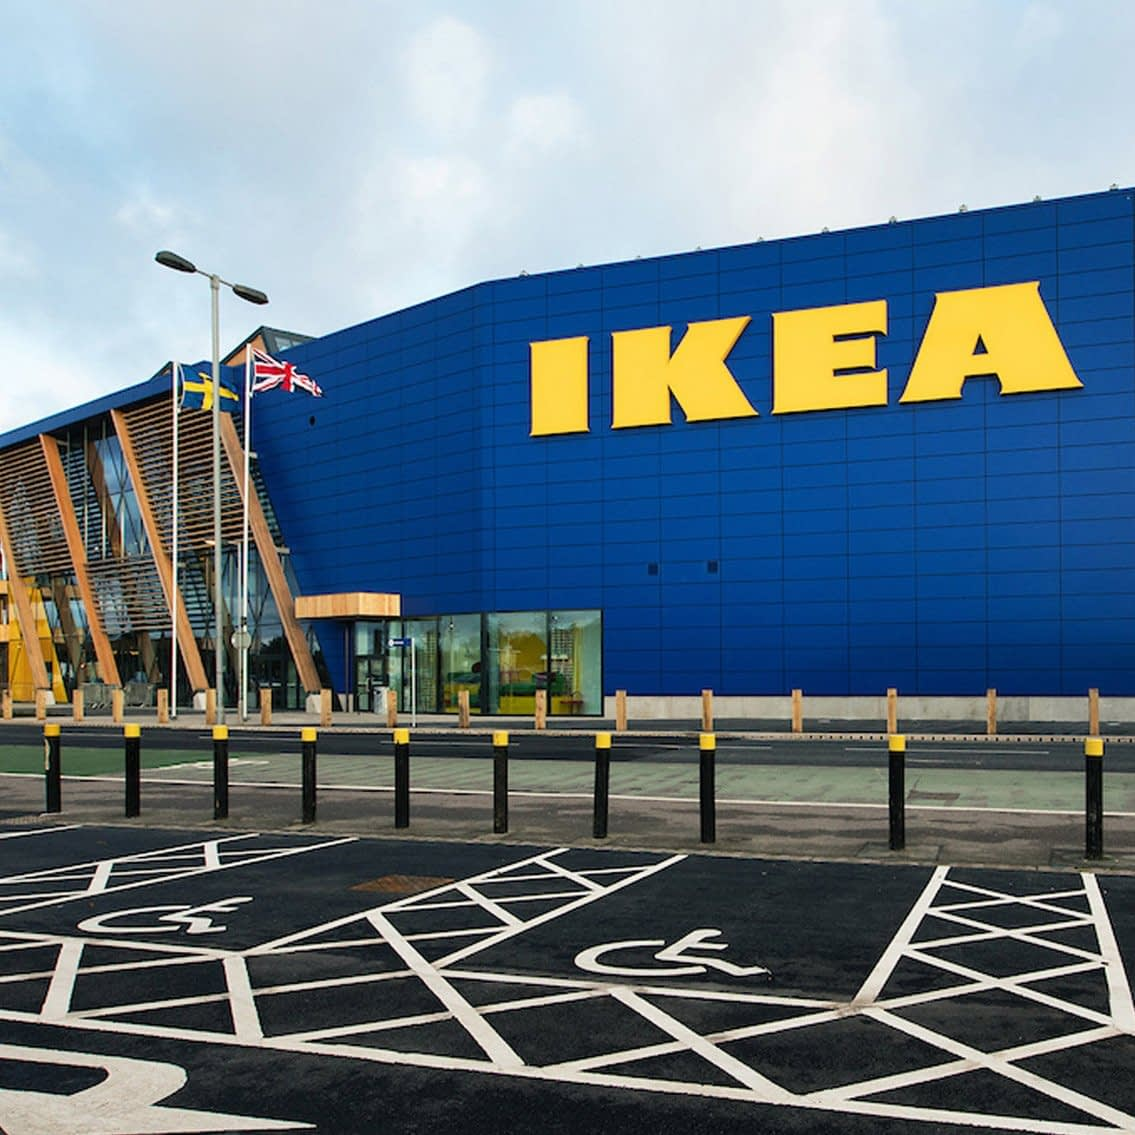 , IKEA rental furniture to be offered as part of wider sustainable push – What a concept… REUSE (not recycle)!, The Circular Economy